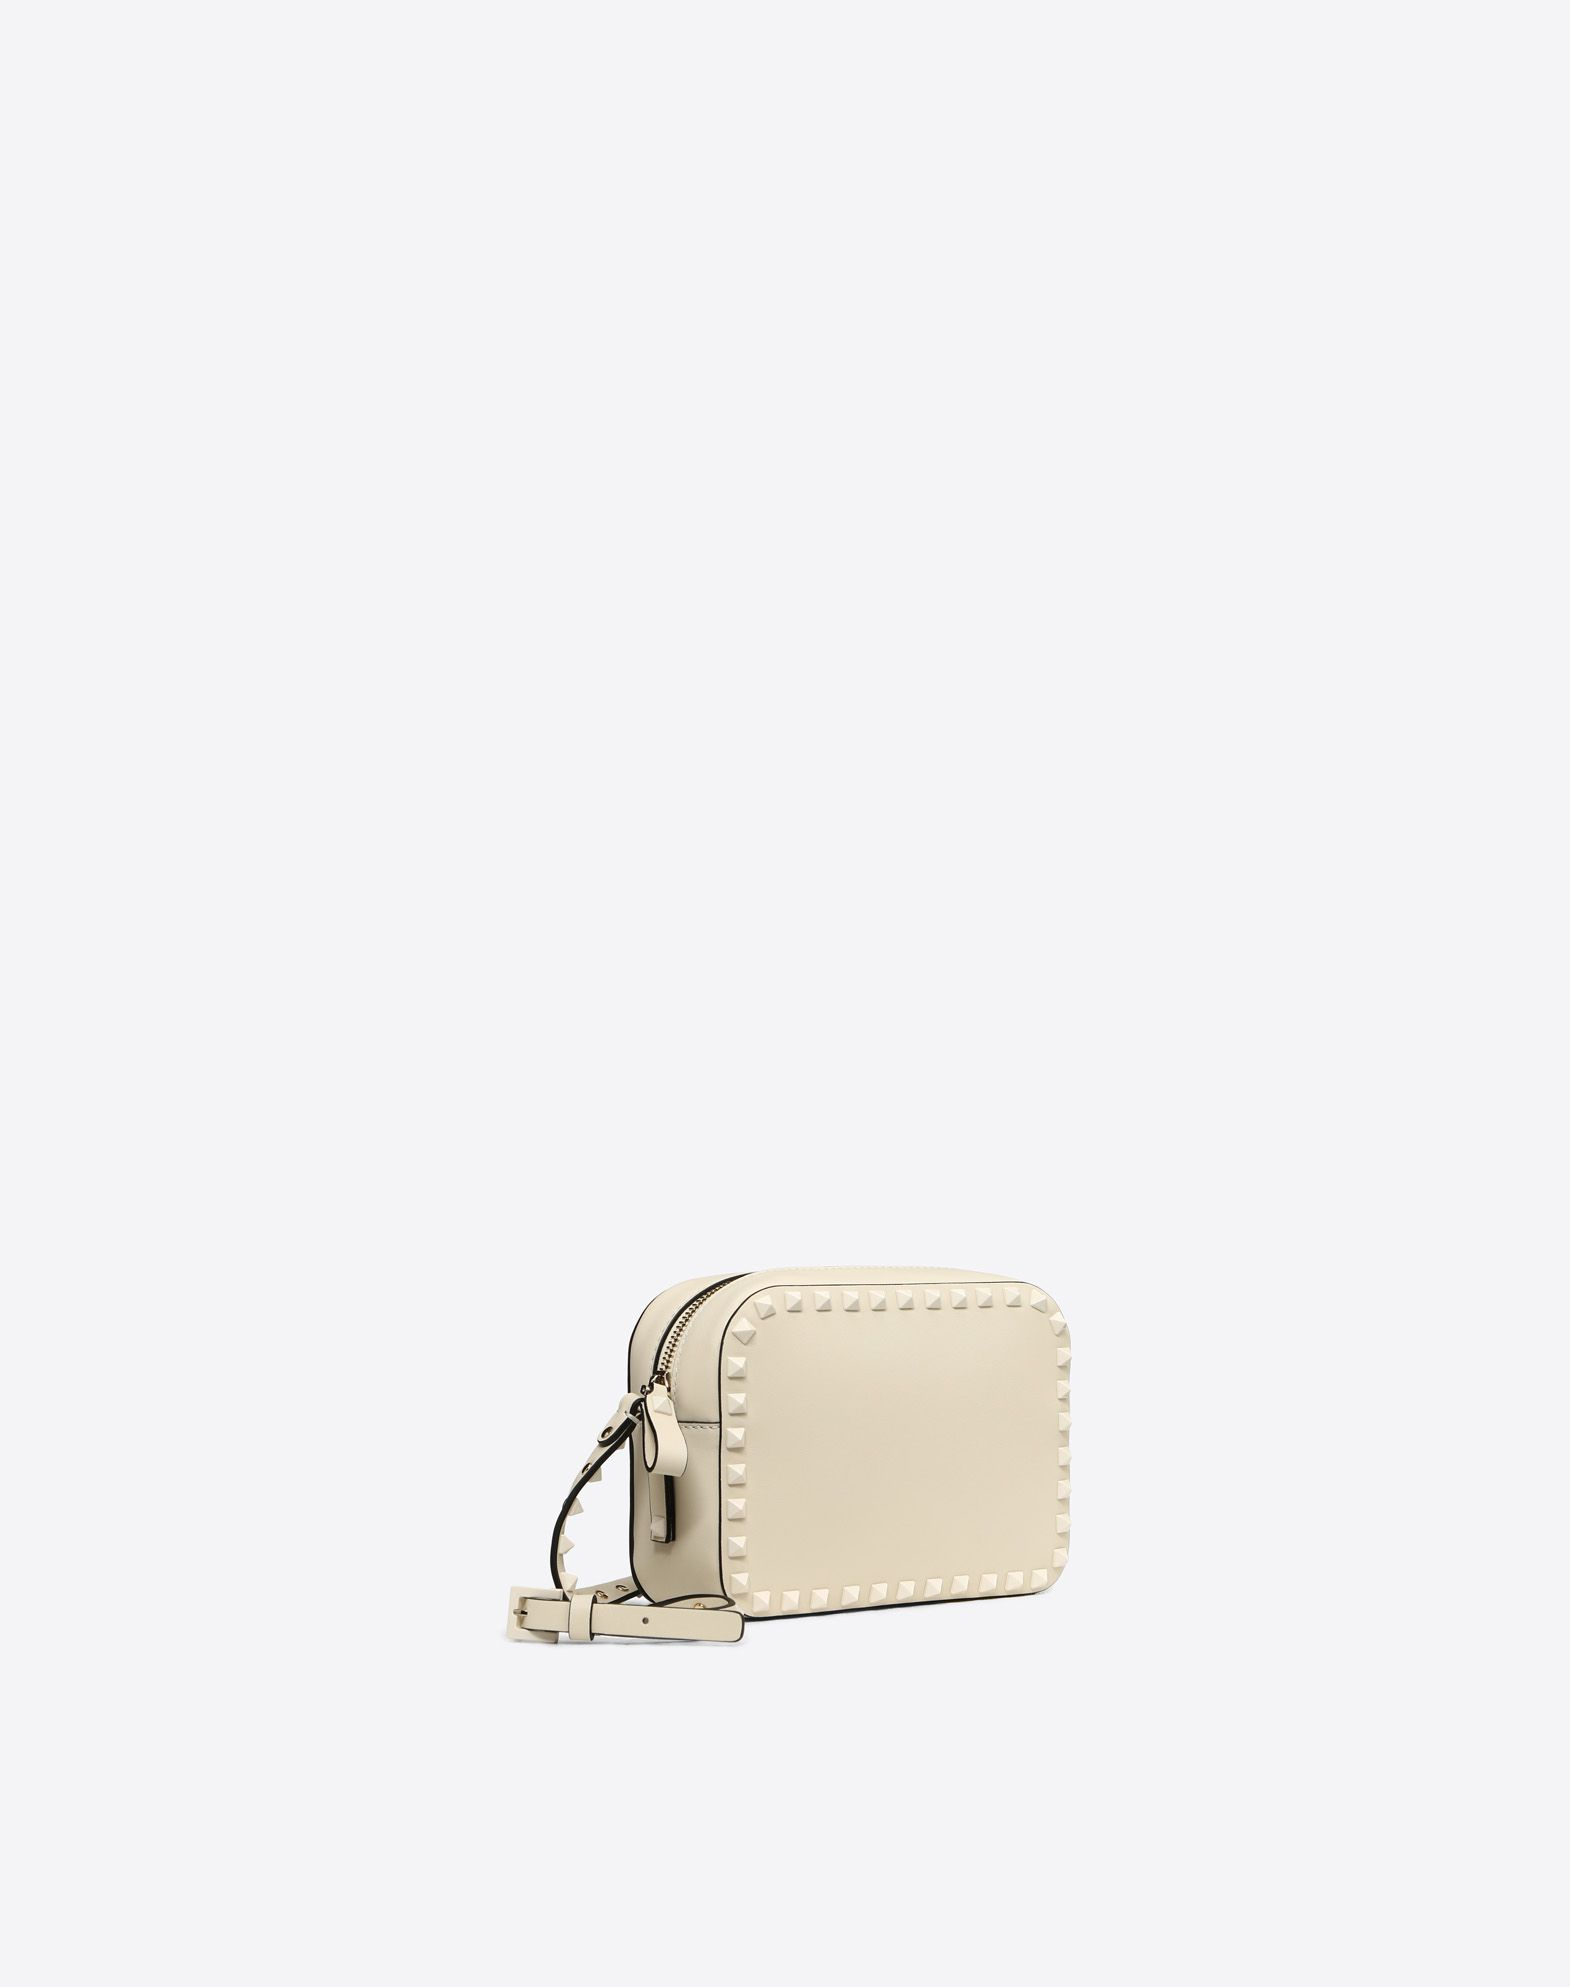 VALENTINO GARAVANI Rockstud Cross-body Bag CROSS BODY BAG D r